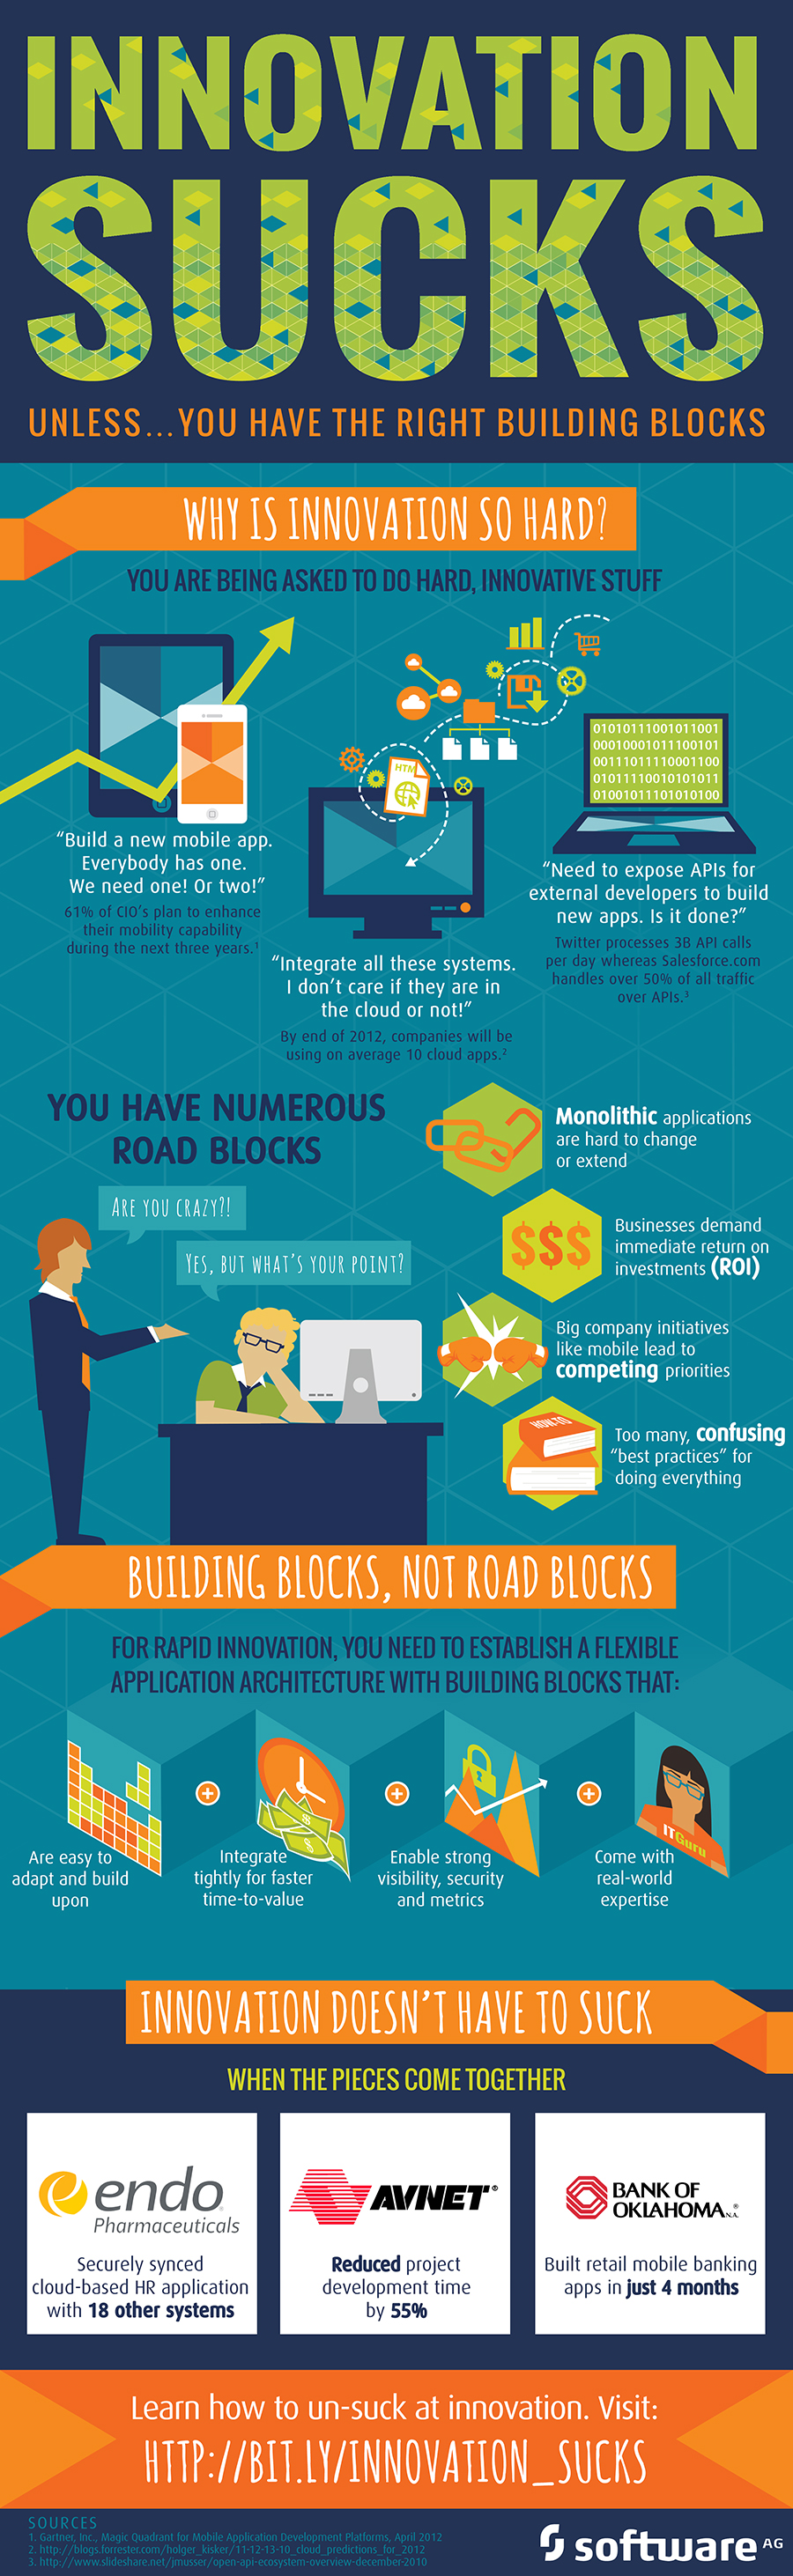 innovation-sucks-unless-you-have-the-right-building-blocks_50c894eabd39e